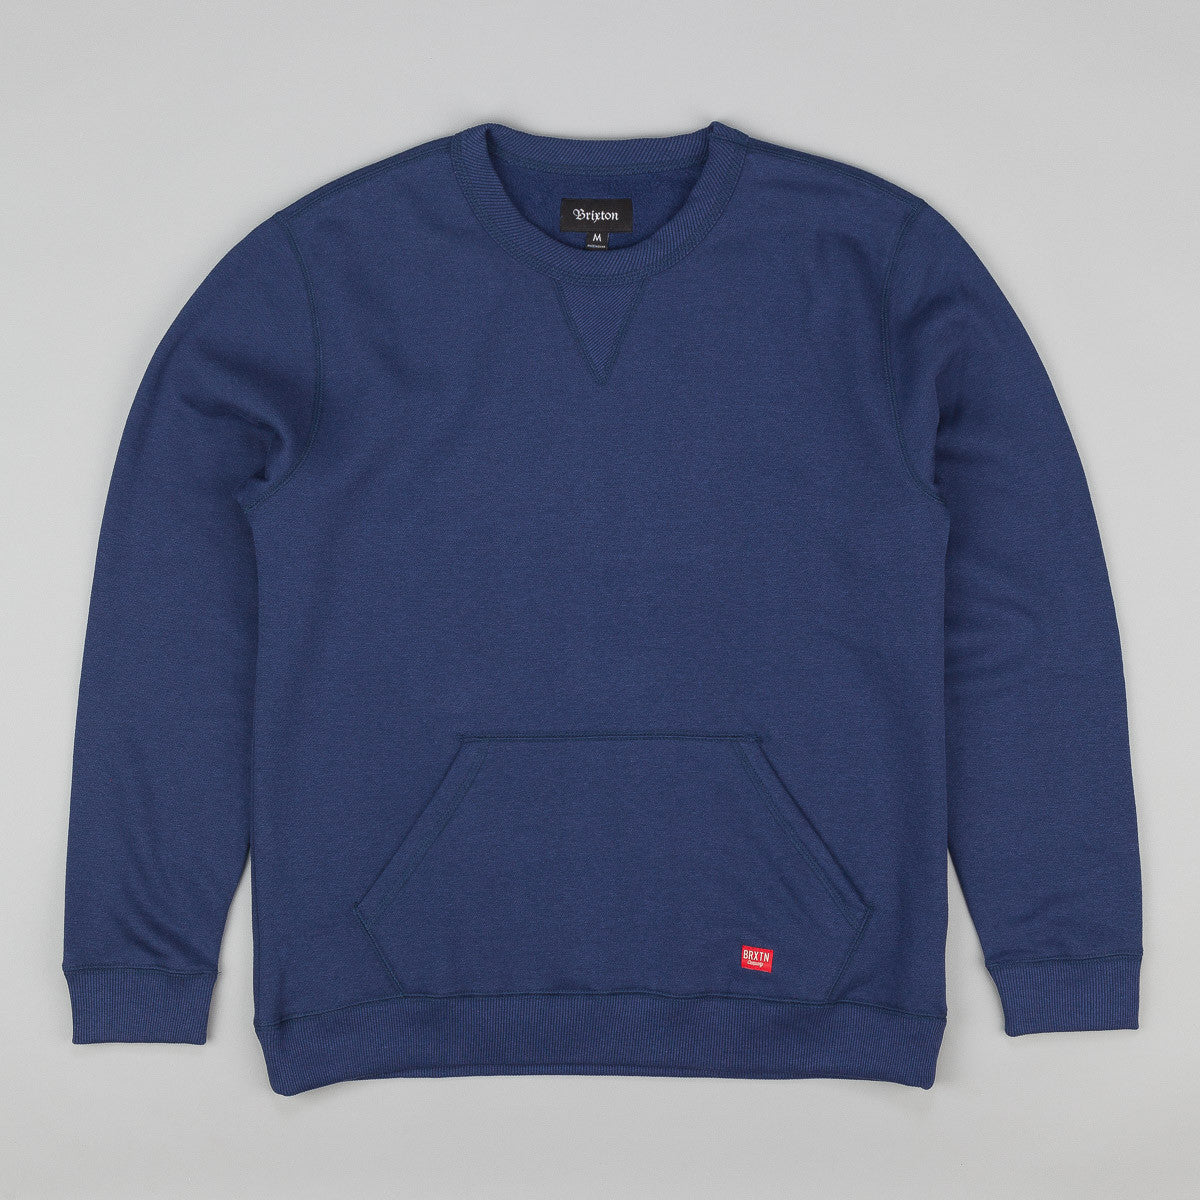 Brixton Hoover Crew Fleece Sweatshirt